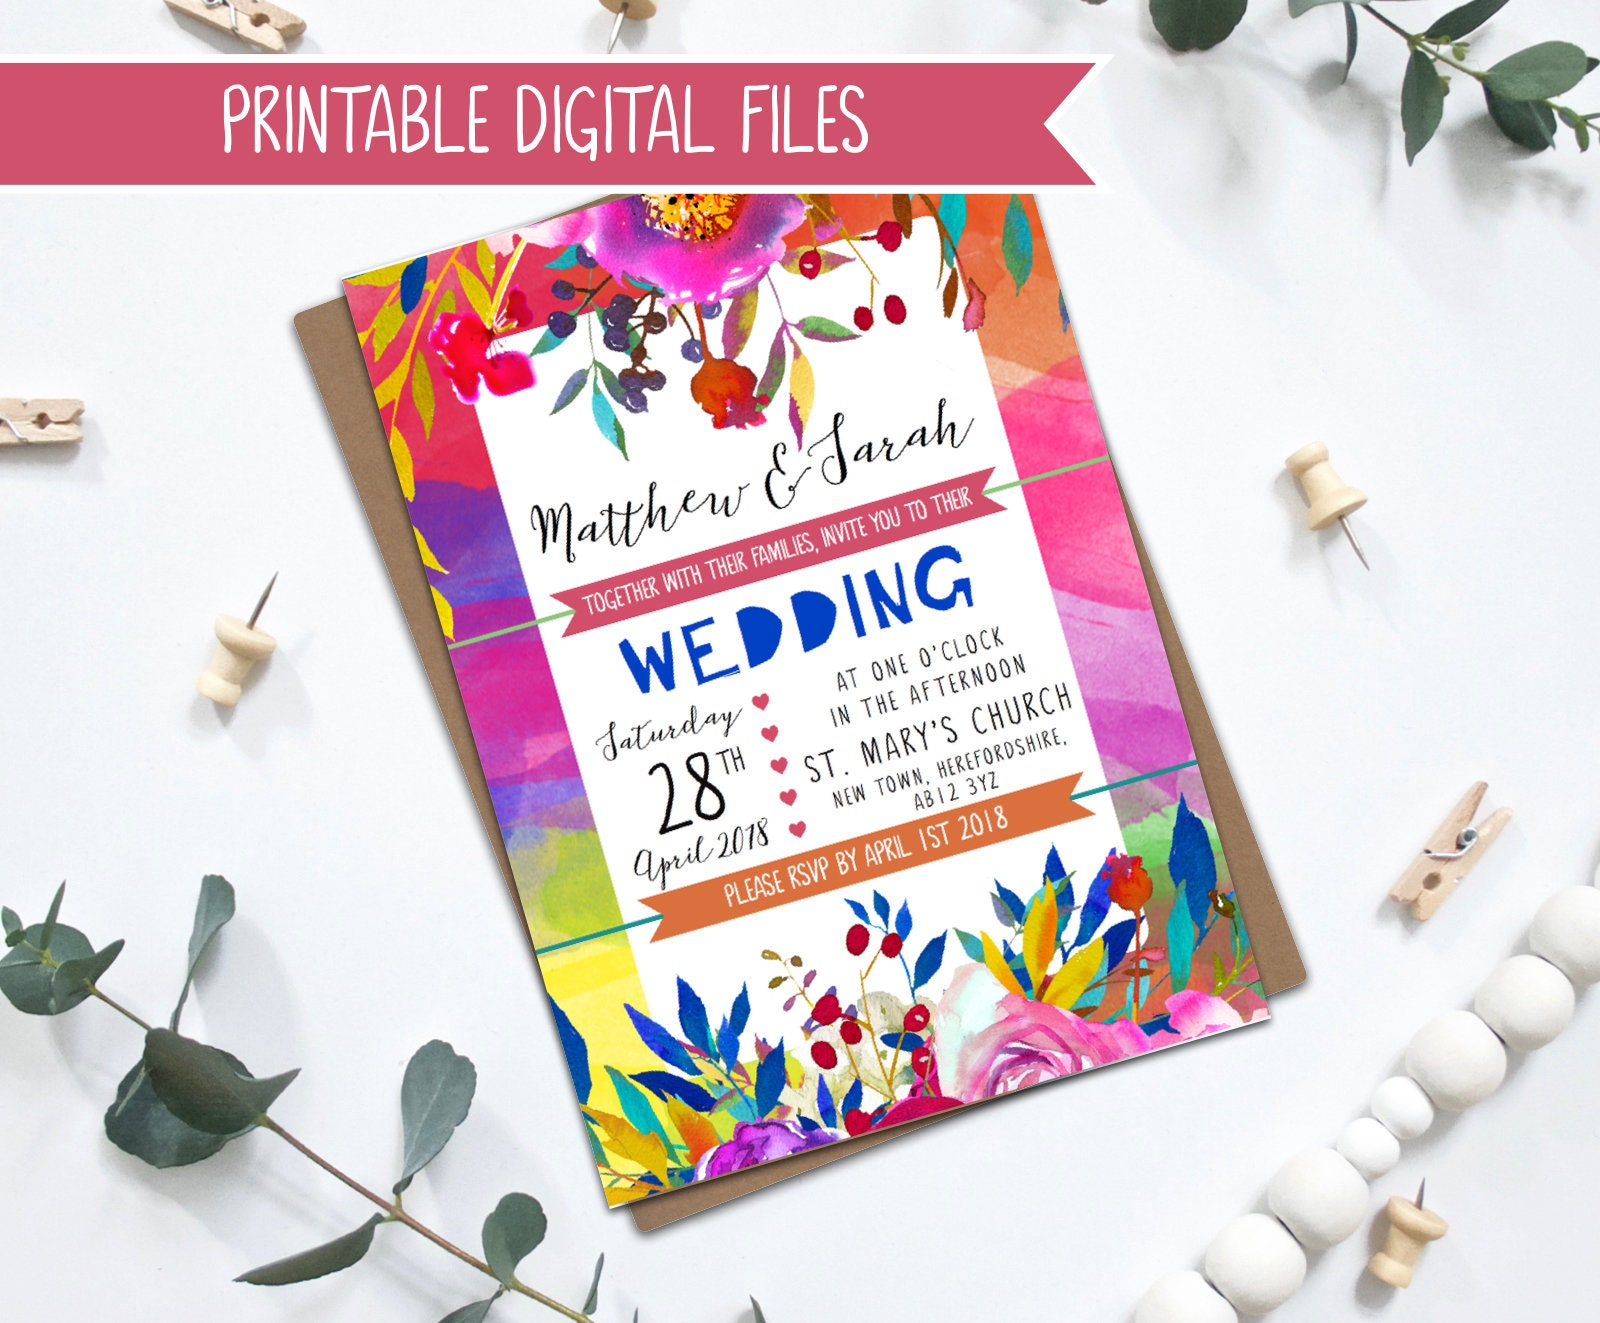 image about Wedding Stationery Printable known as PRINTABLE Wedding day Invitation - Vibrant Formidable Marriage ceremony